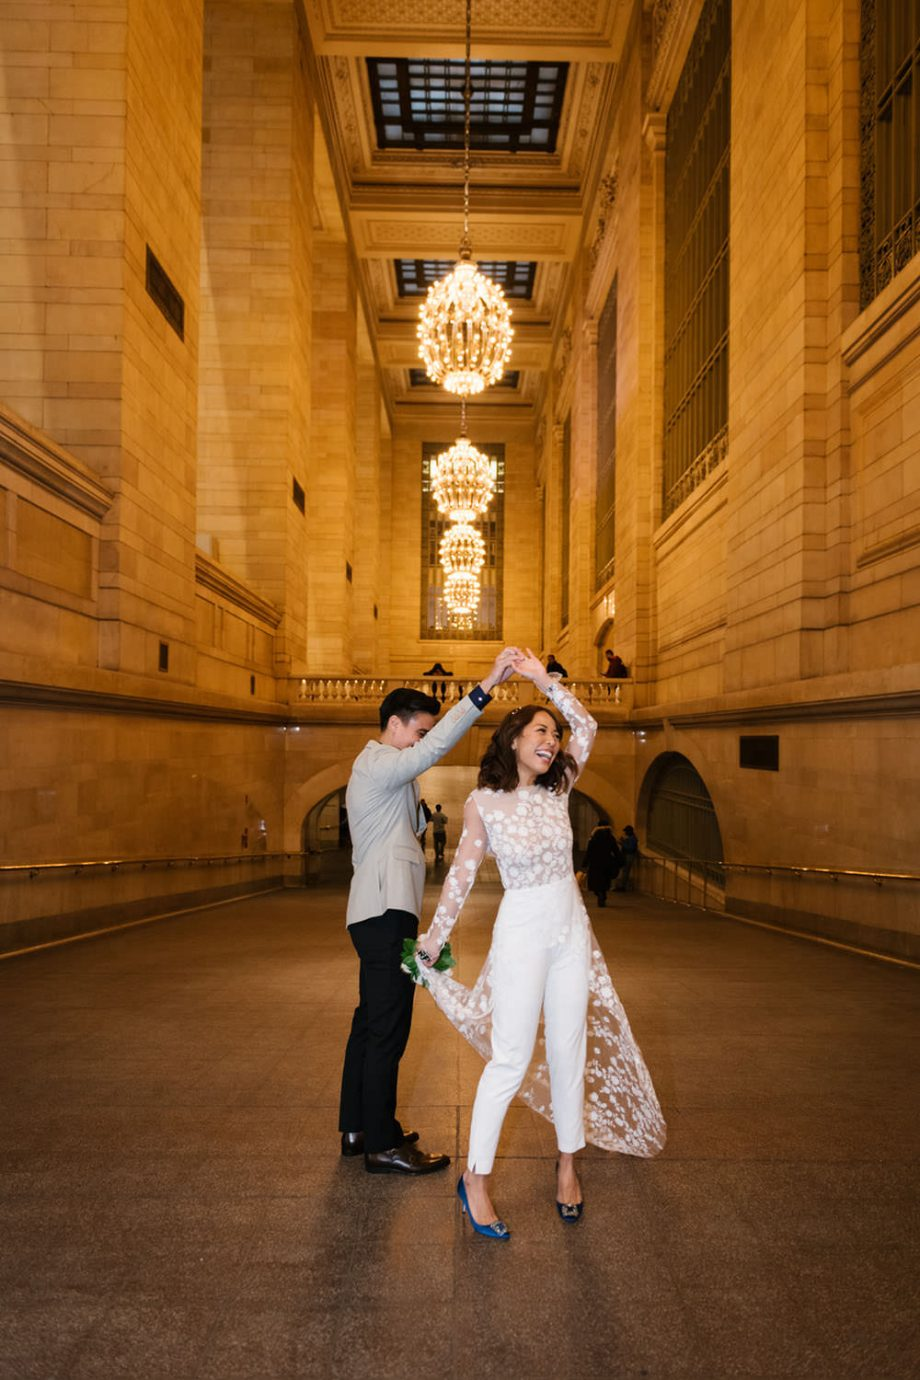 Grand Central wedding in NYC